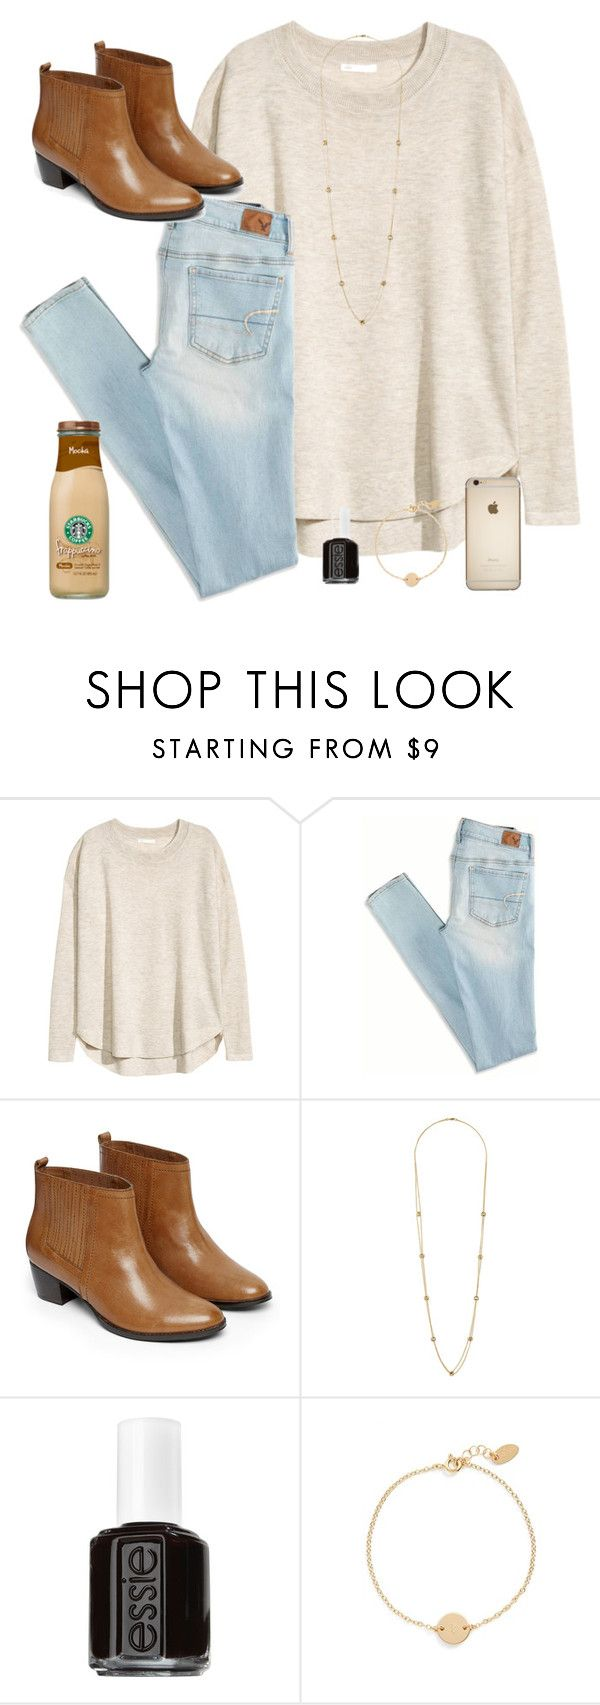 """""""Almost to 600!!"""" by oliveee-heinzzz ❤ liked on Polyvore featuring H&M, American Eagle Outfitters, Warehouse, Wallis, Essie and Nashelle"""